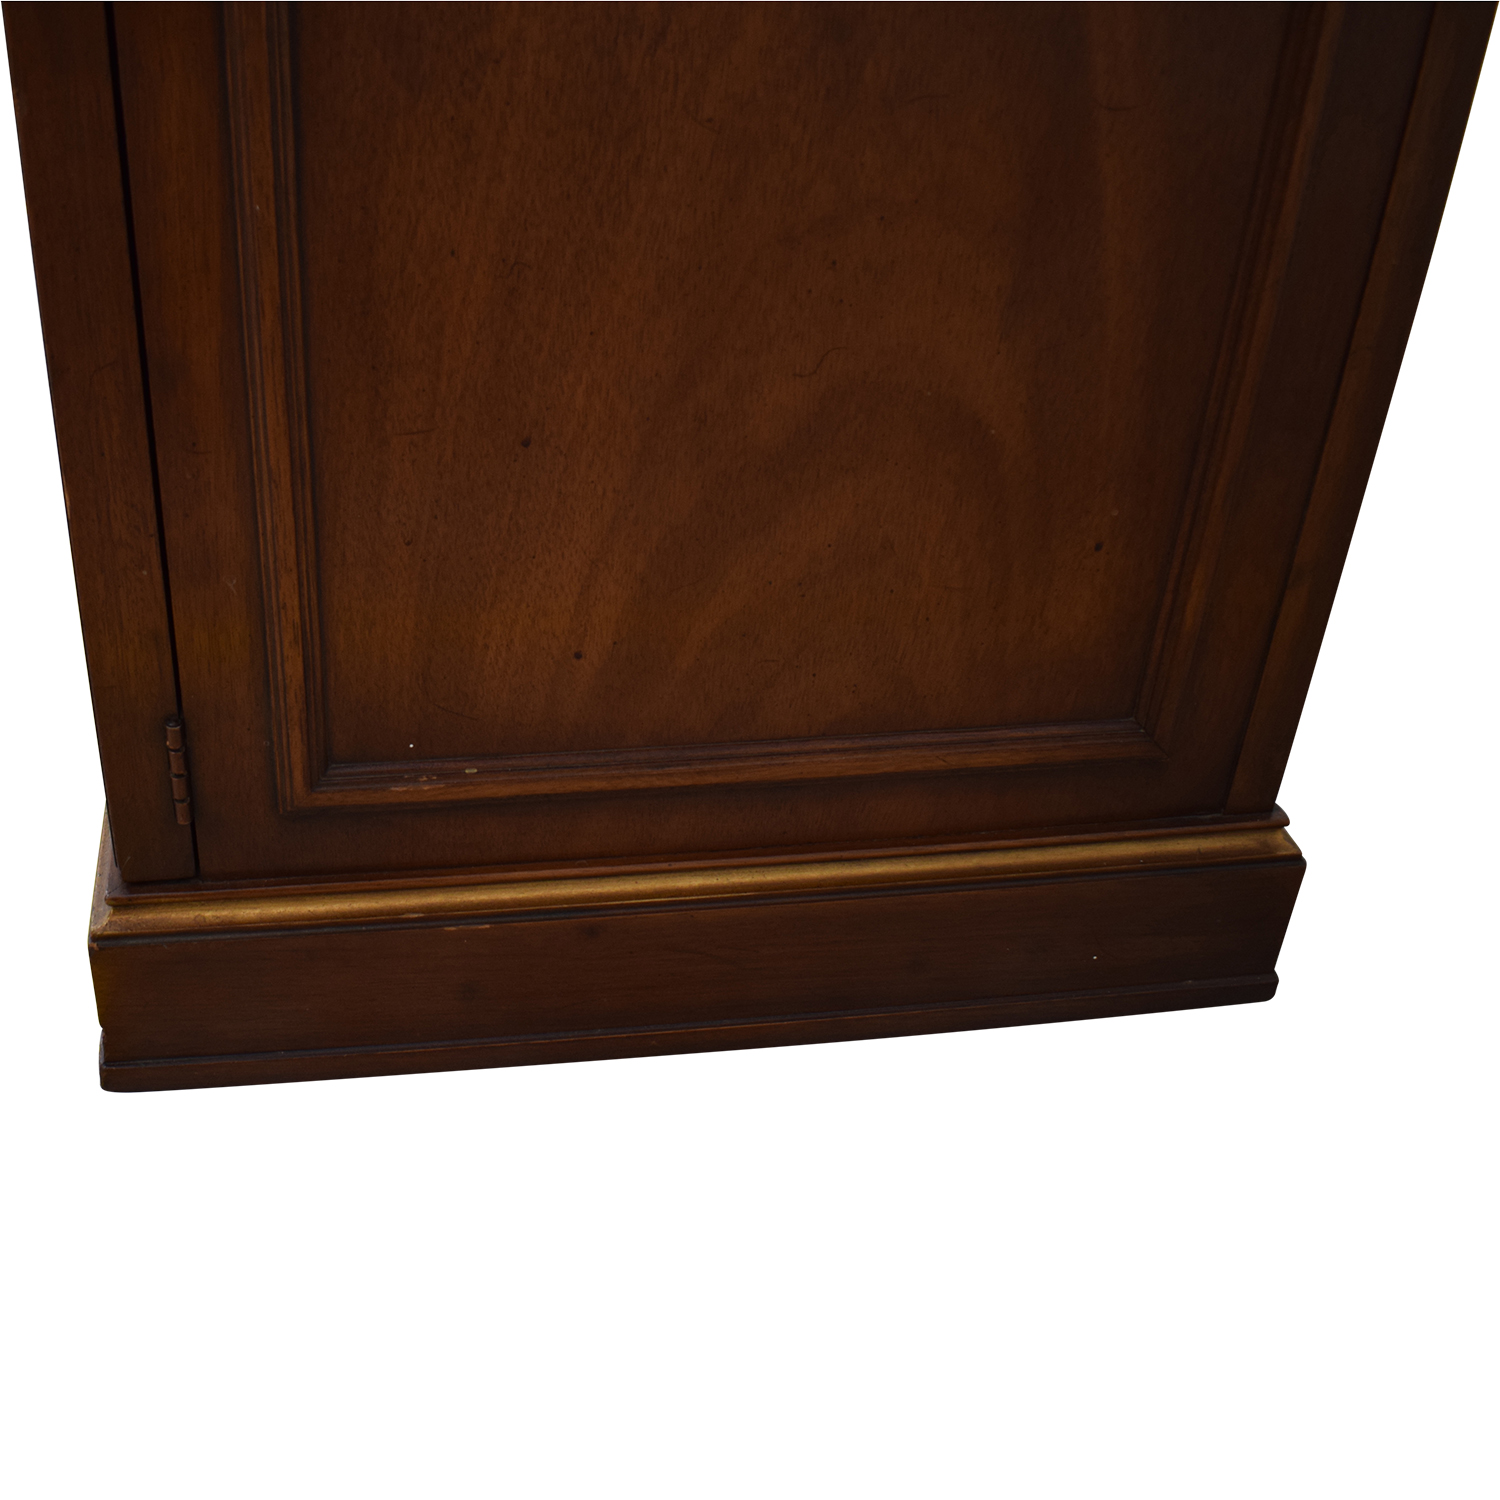 Drexel Heritage Drexel Heritage Traditional Wood Buffet Table Cabinets & Sideboards